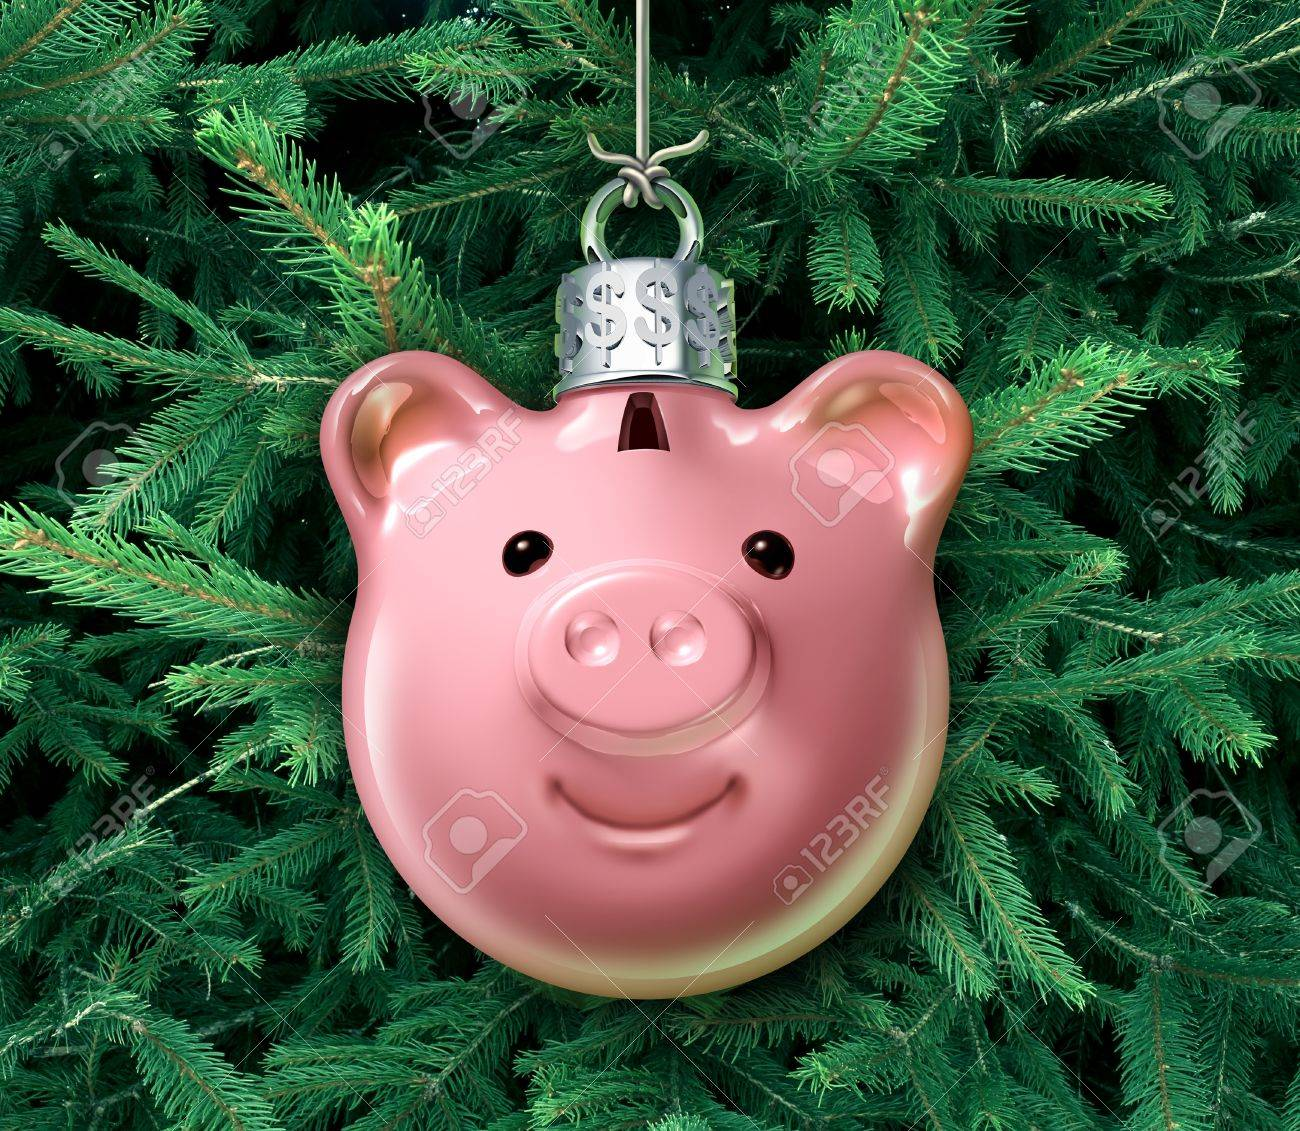 How to start a christmas decor business - Christmas Business Concept With A Holiday Tree Ornament Decoration Shaped As A Piggy Bank Over A